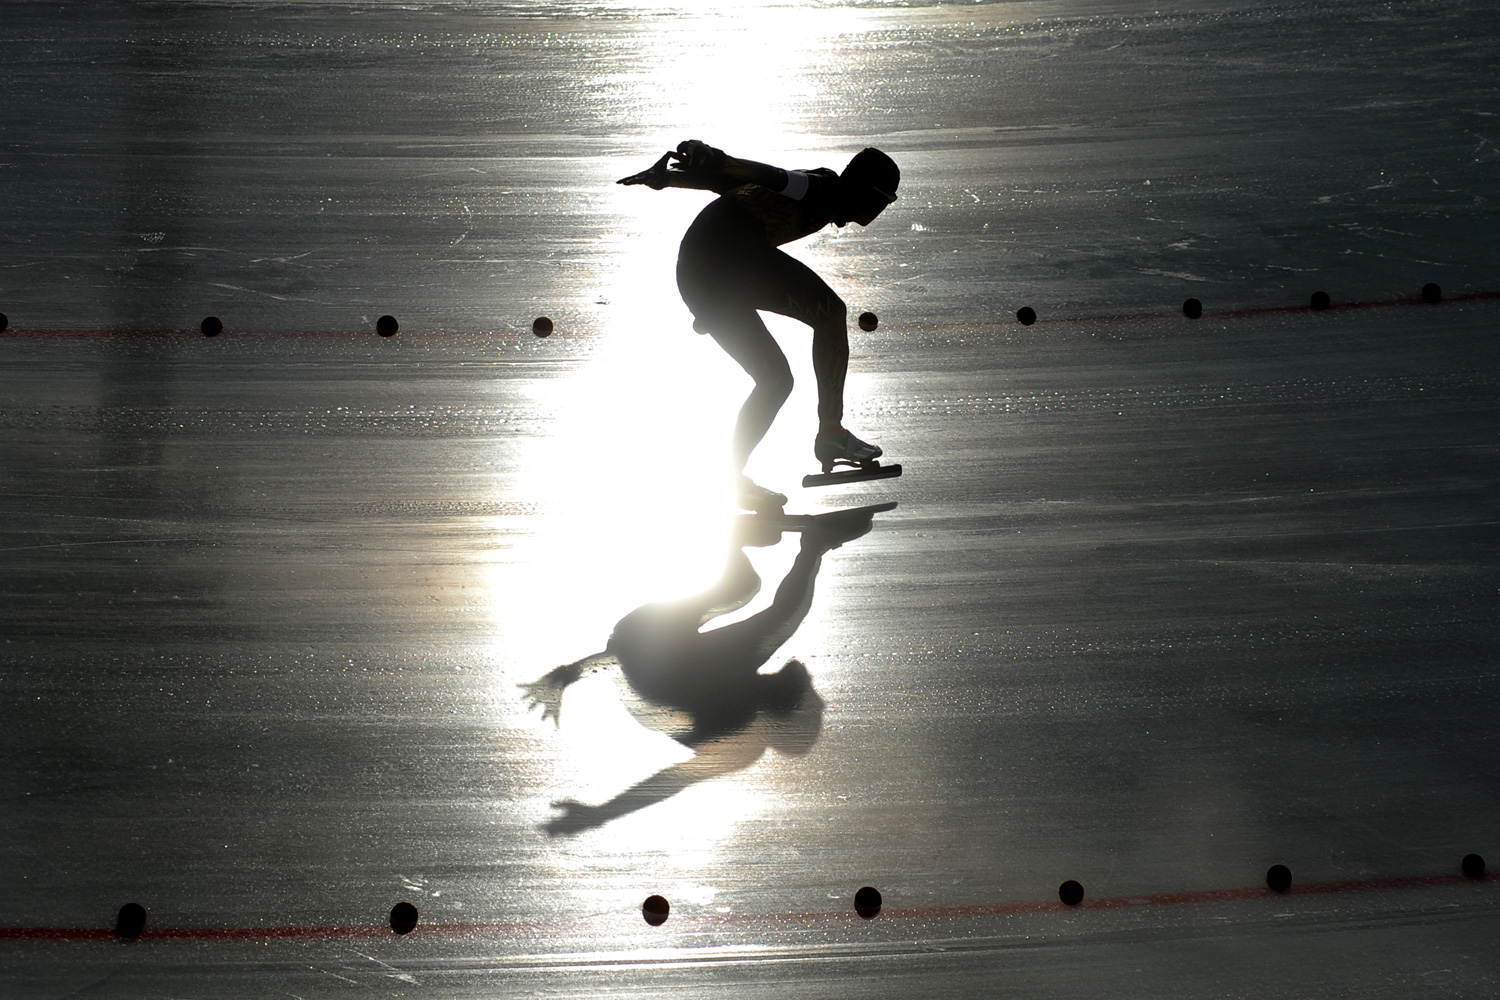 January 14, 2012. Toshihiro Kakui of Japan competes during the men's 500 m speed skating event at the Winter Youth Olympic Games 2012 in Innsbruck, Austria.